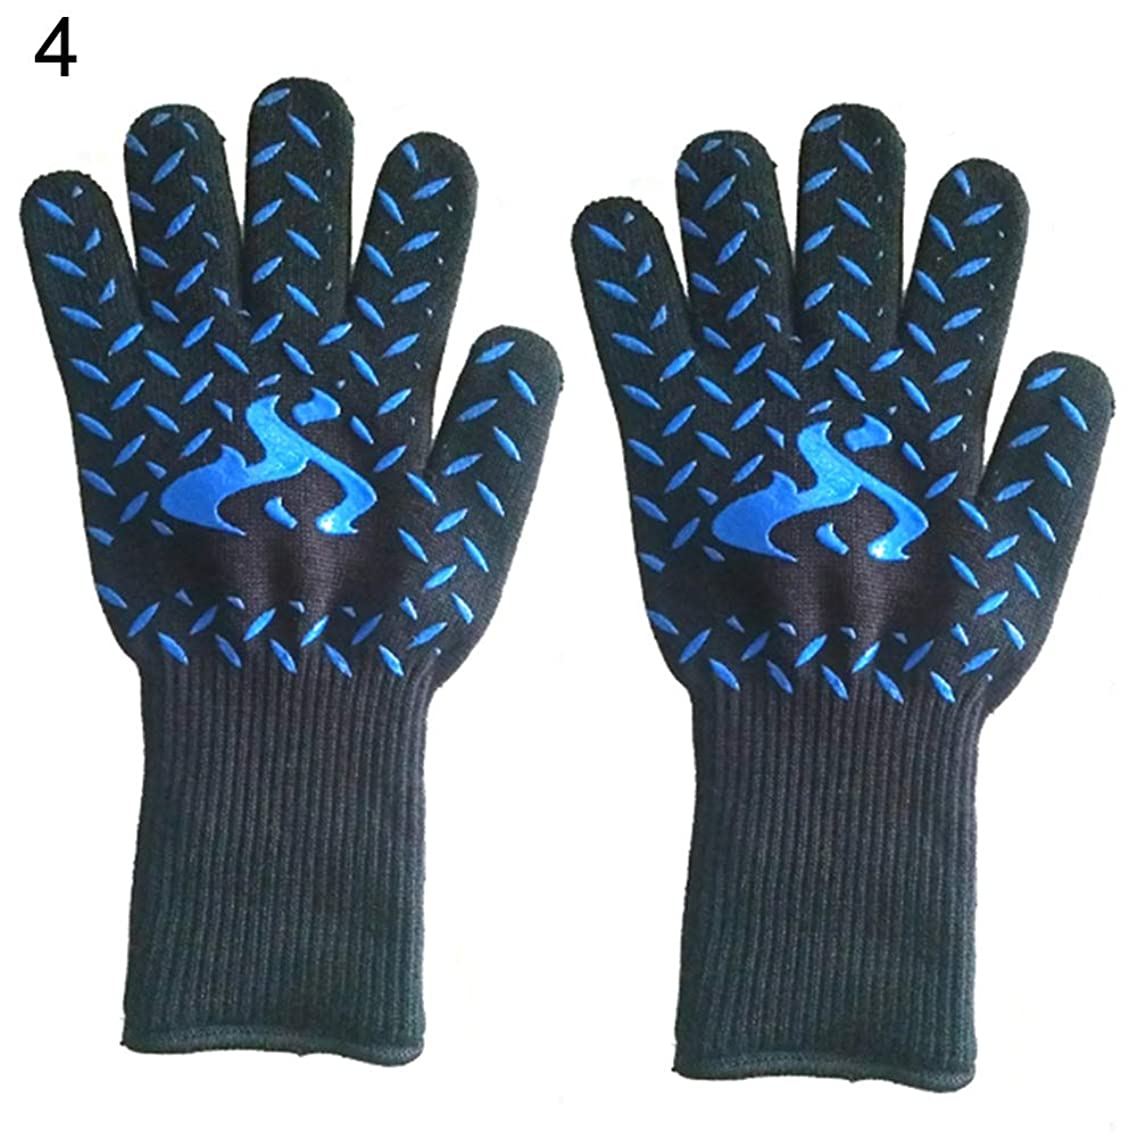 2Pcs Kitchen High Temperature Resistant Glove Waterproof Forearm Protection Use As Oven Mitts, Pot Holders, Heat Resistant Gloves for Grilling 4